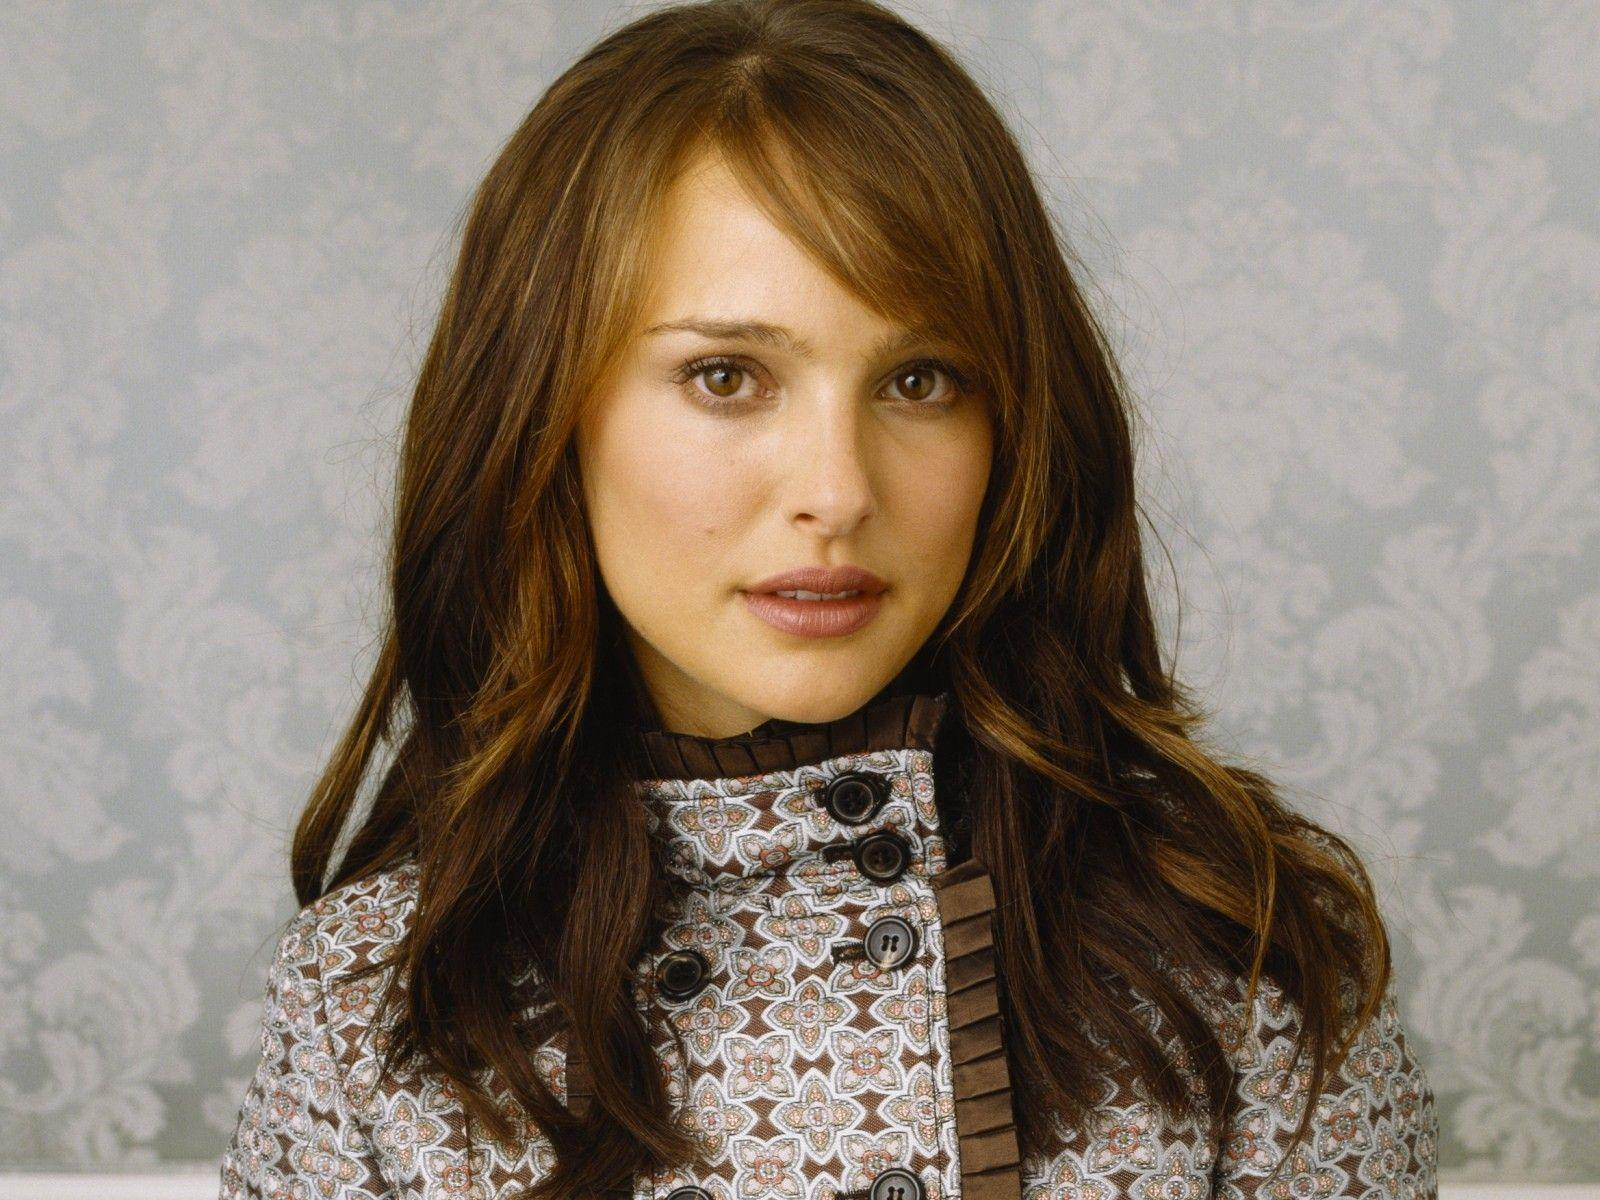 Natalie Portman Wallpapers awsome Widescreen photo gallery hd